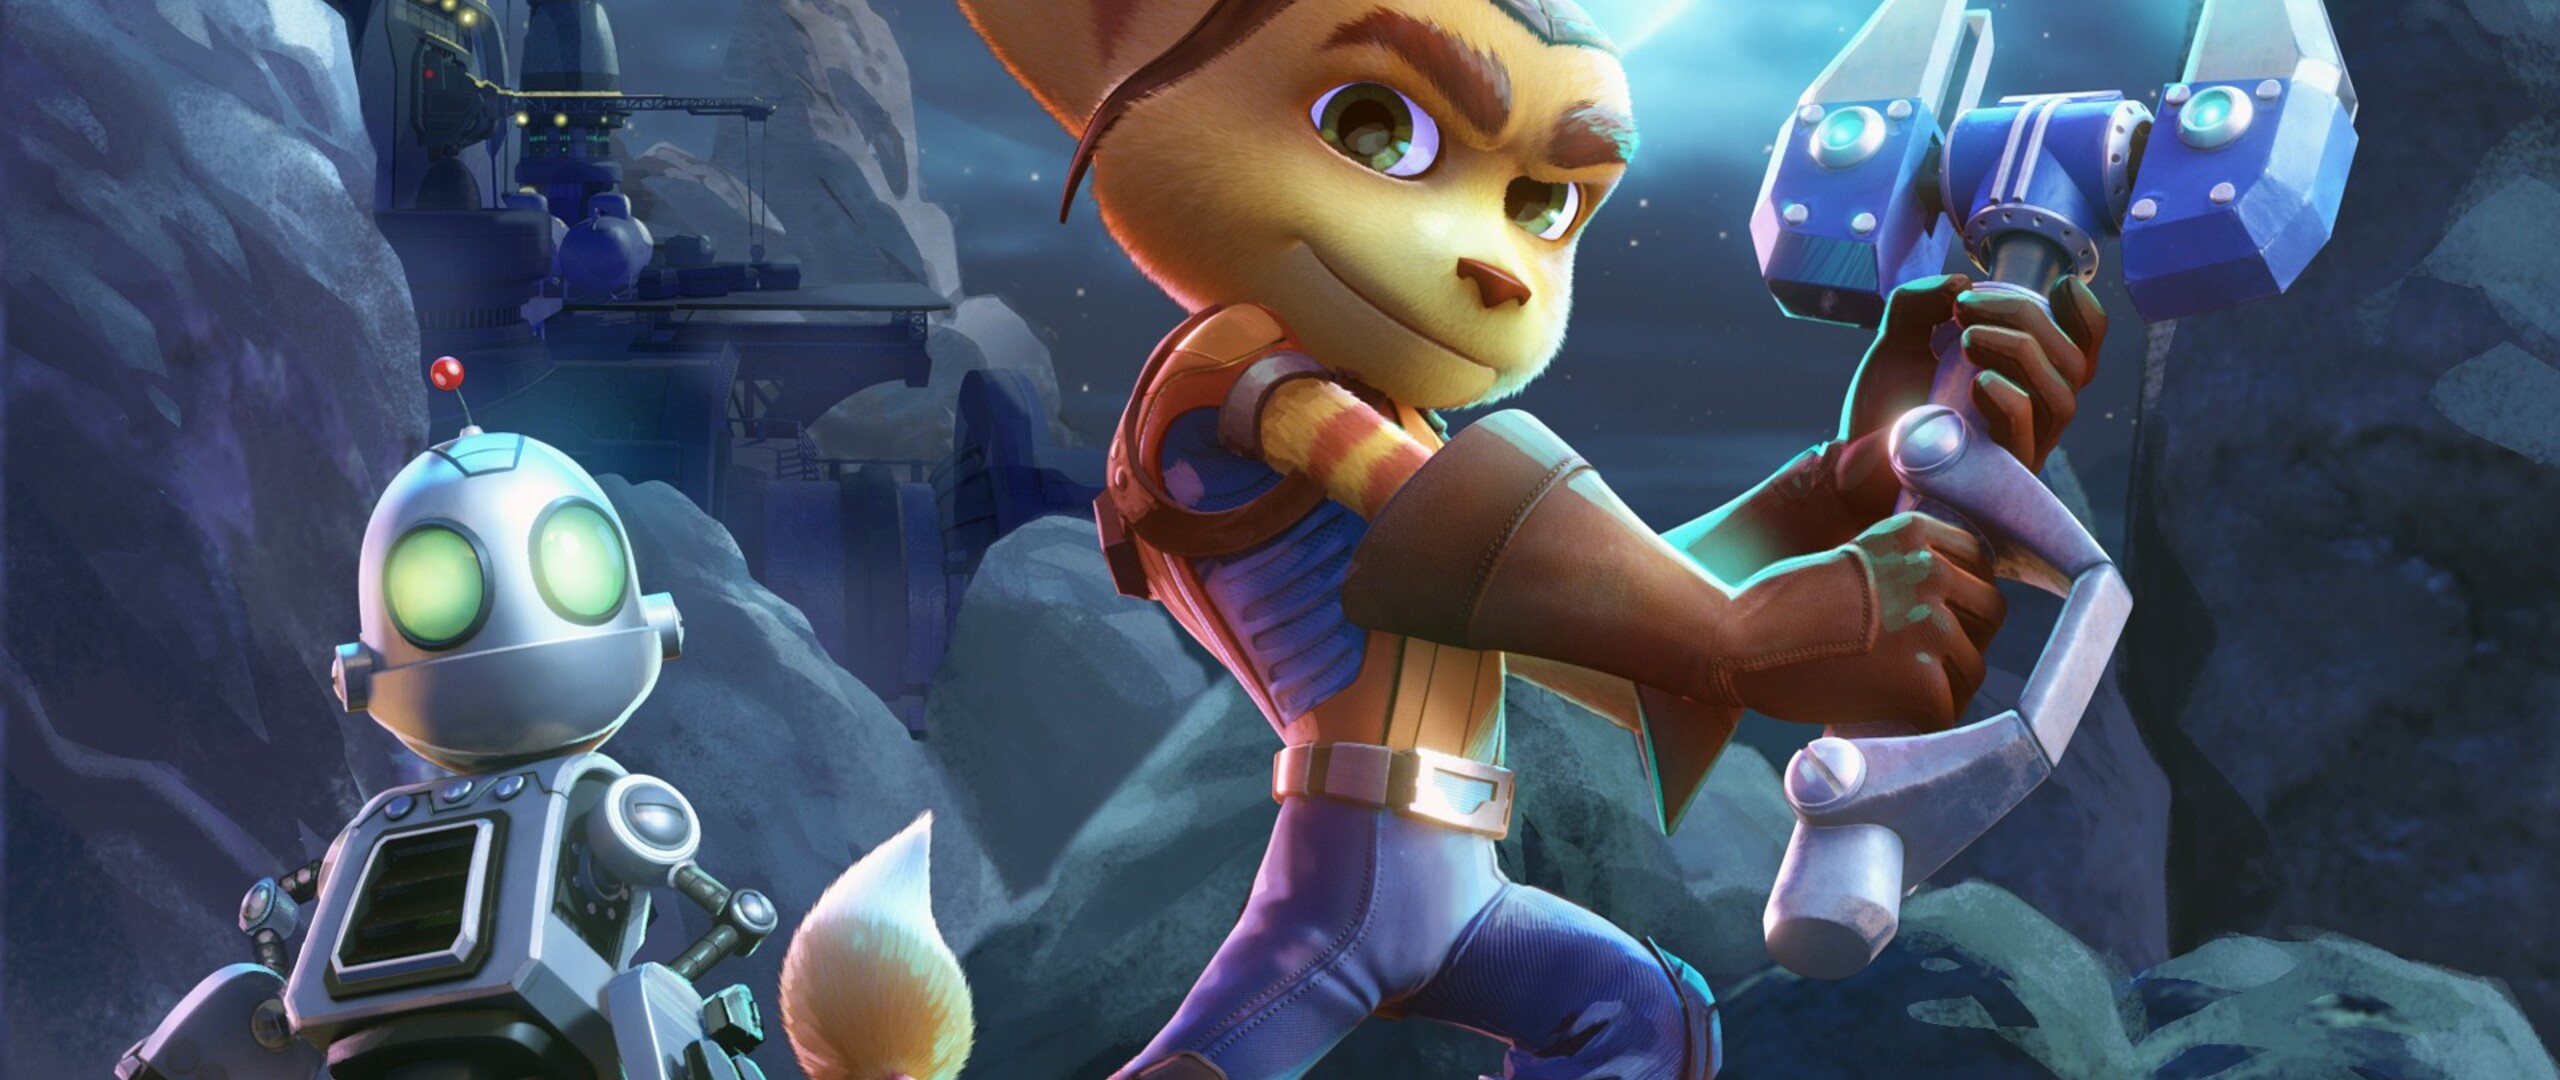 2560x1080 Ratchet And Clank Movie 2560x1080 Resolution Hd 4k